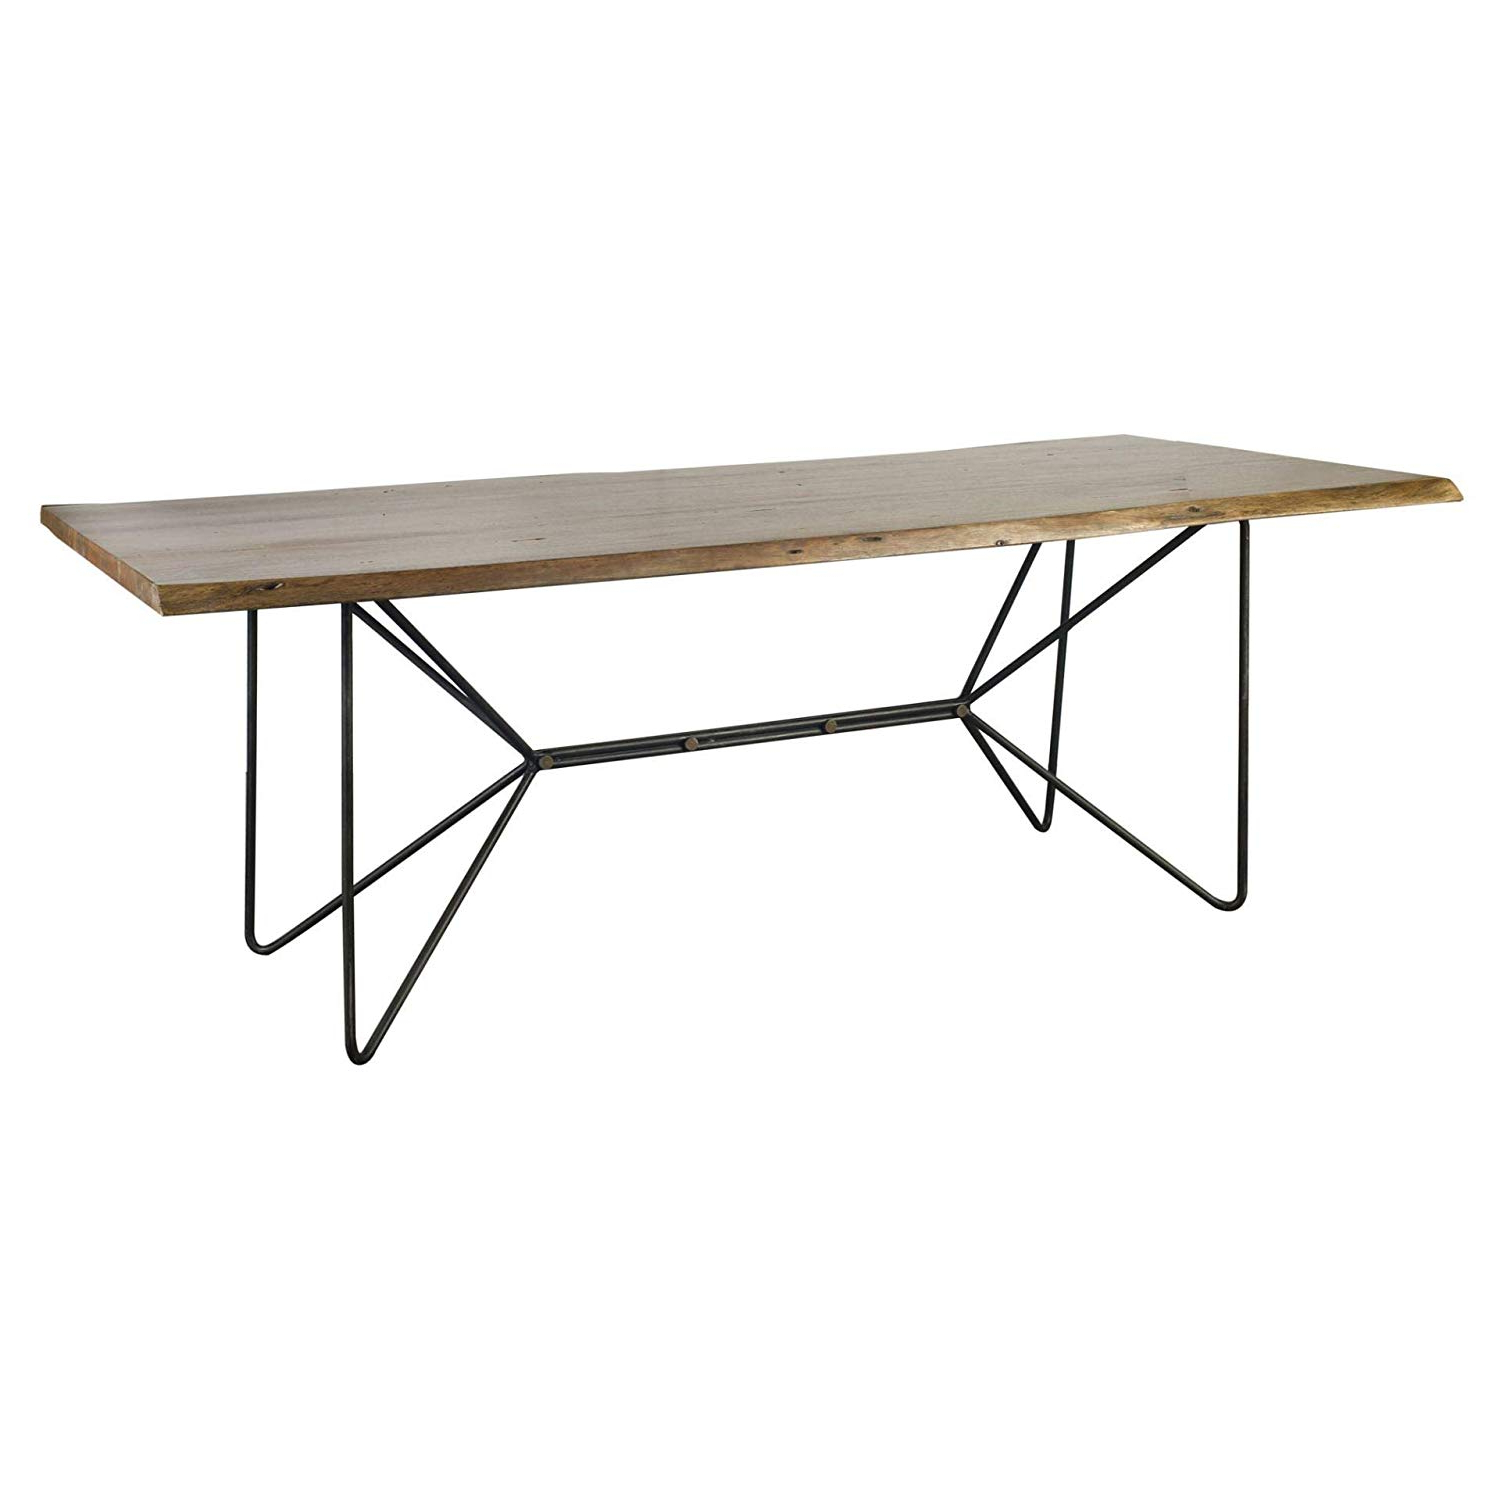 "Widely Used Acacia Wood Dining Tables With Sheet Metal Base With Regard To Amazon: Mercana 67623 Ab Dining Table, 84"" X 38"" X (View 23 of 25)"